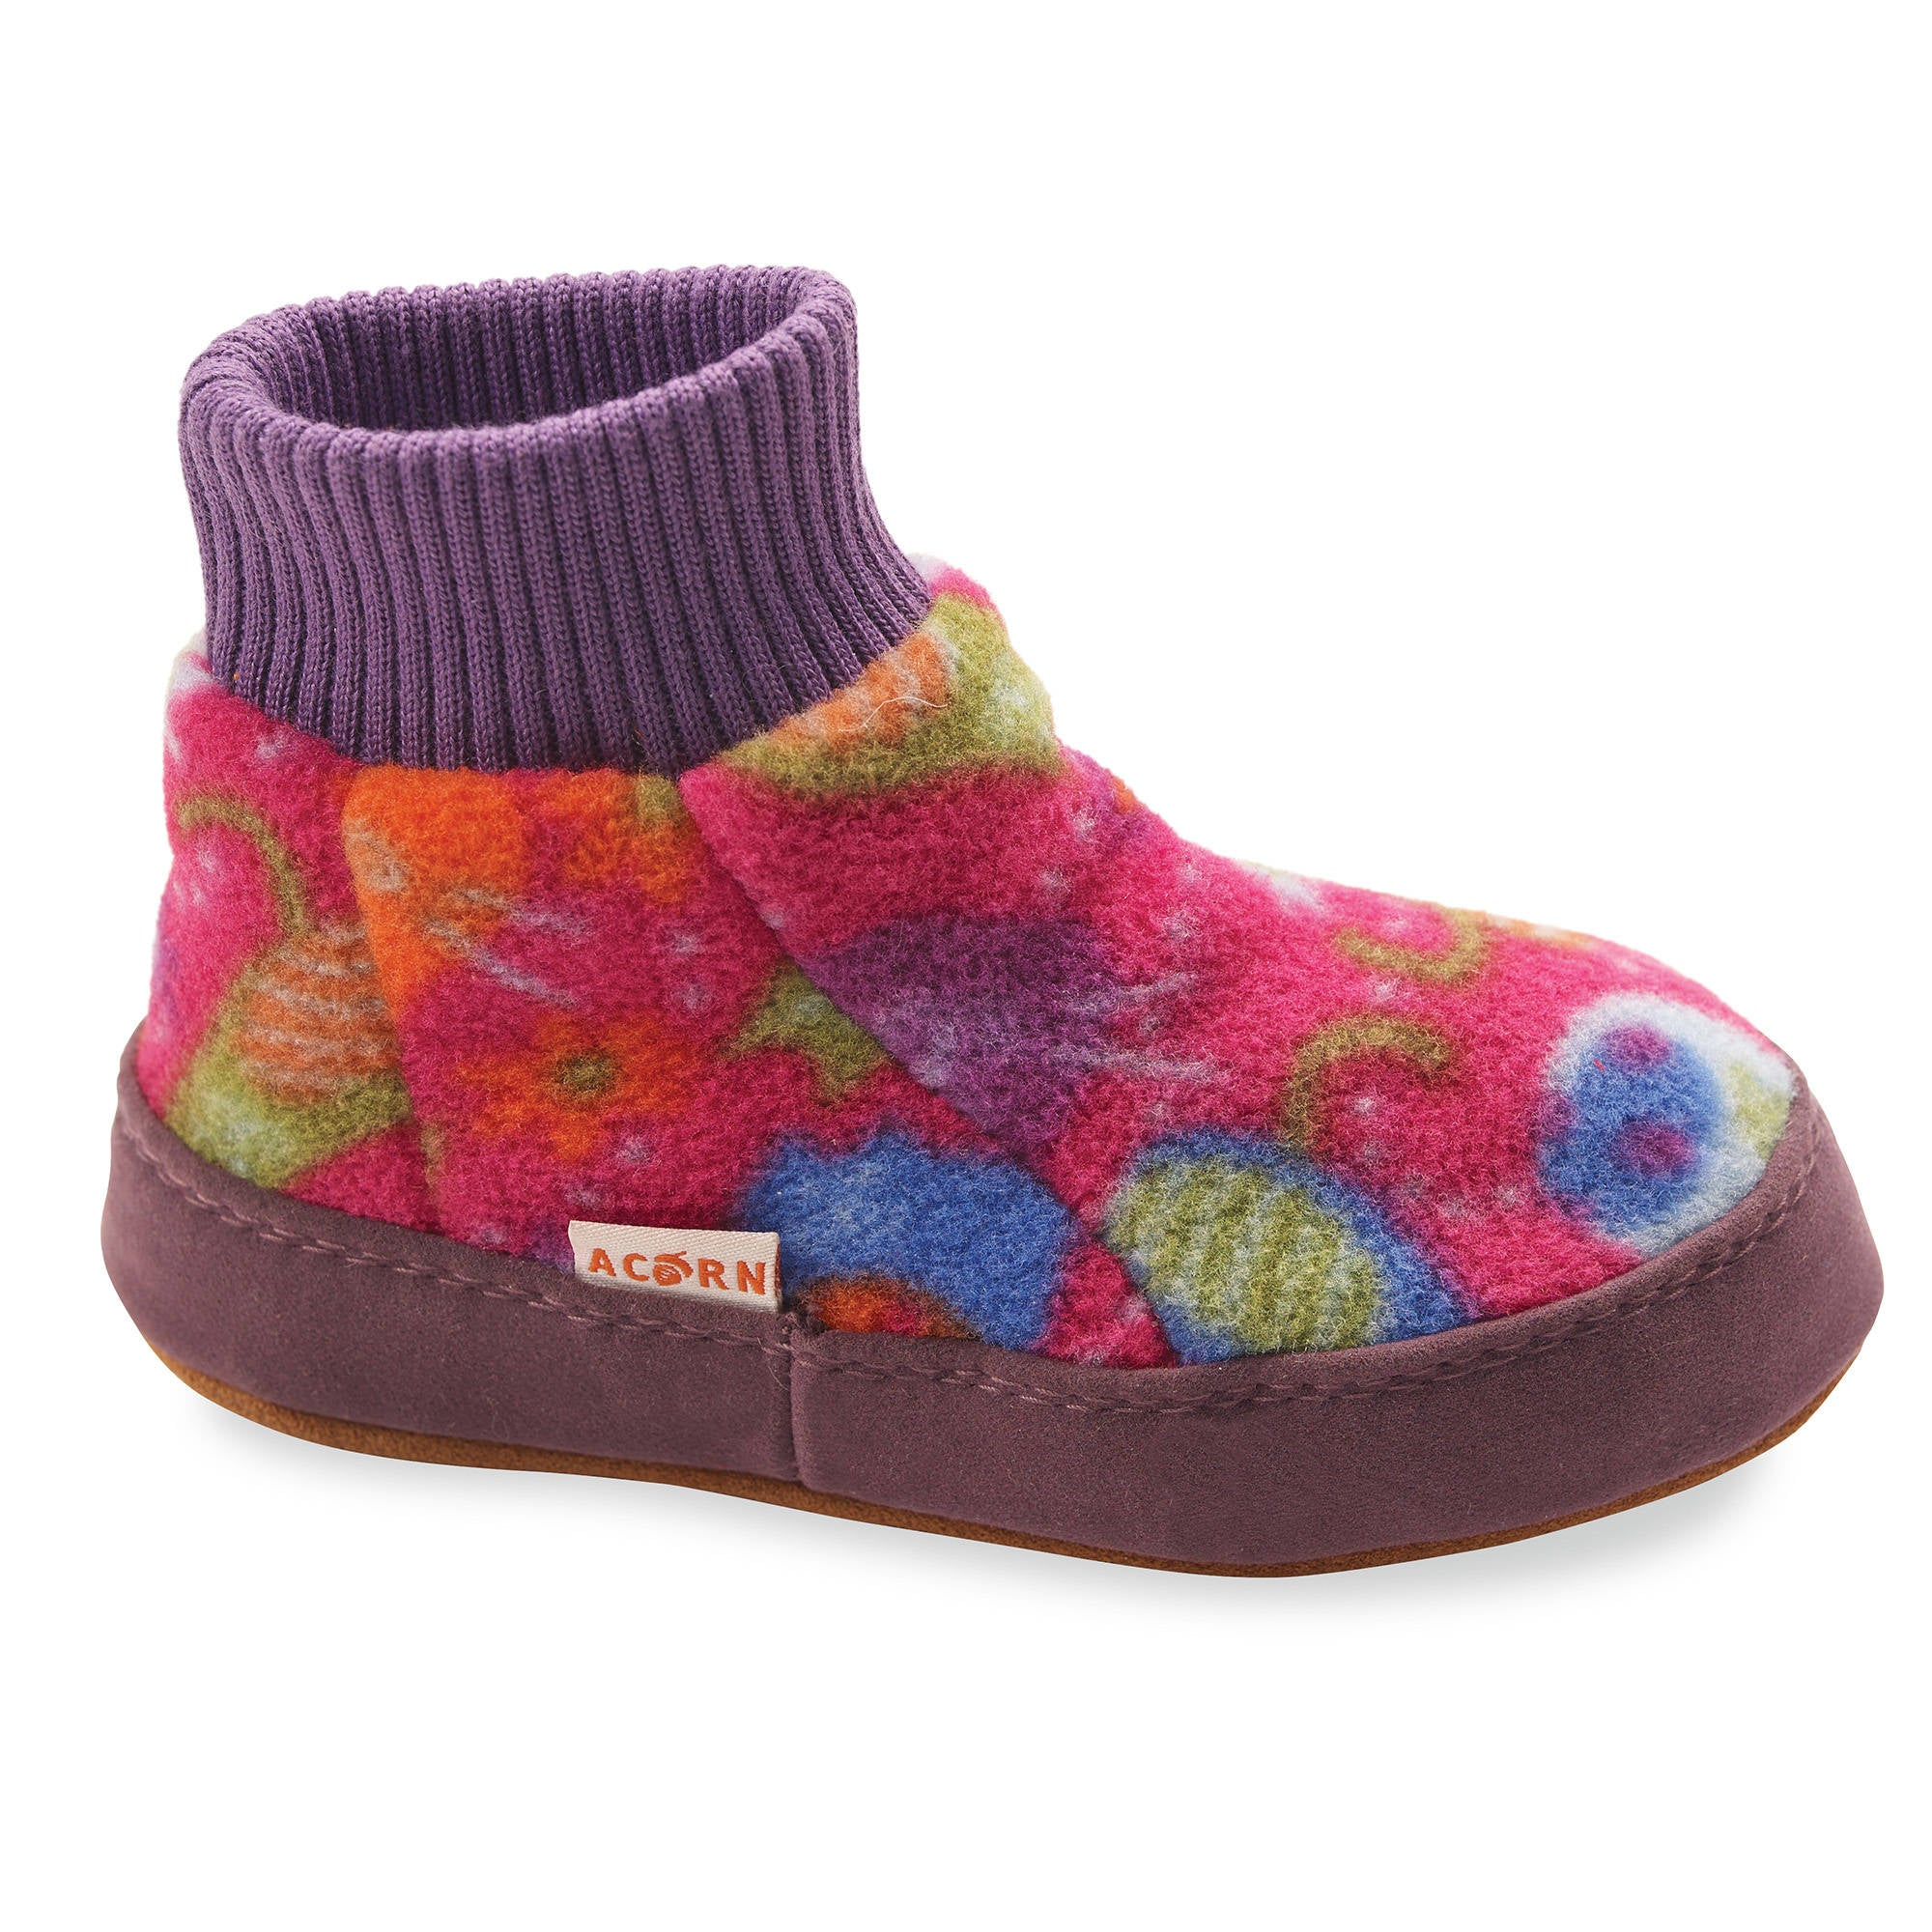 Kid's Kadabra II Slippers in Fat Cat Pink